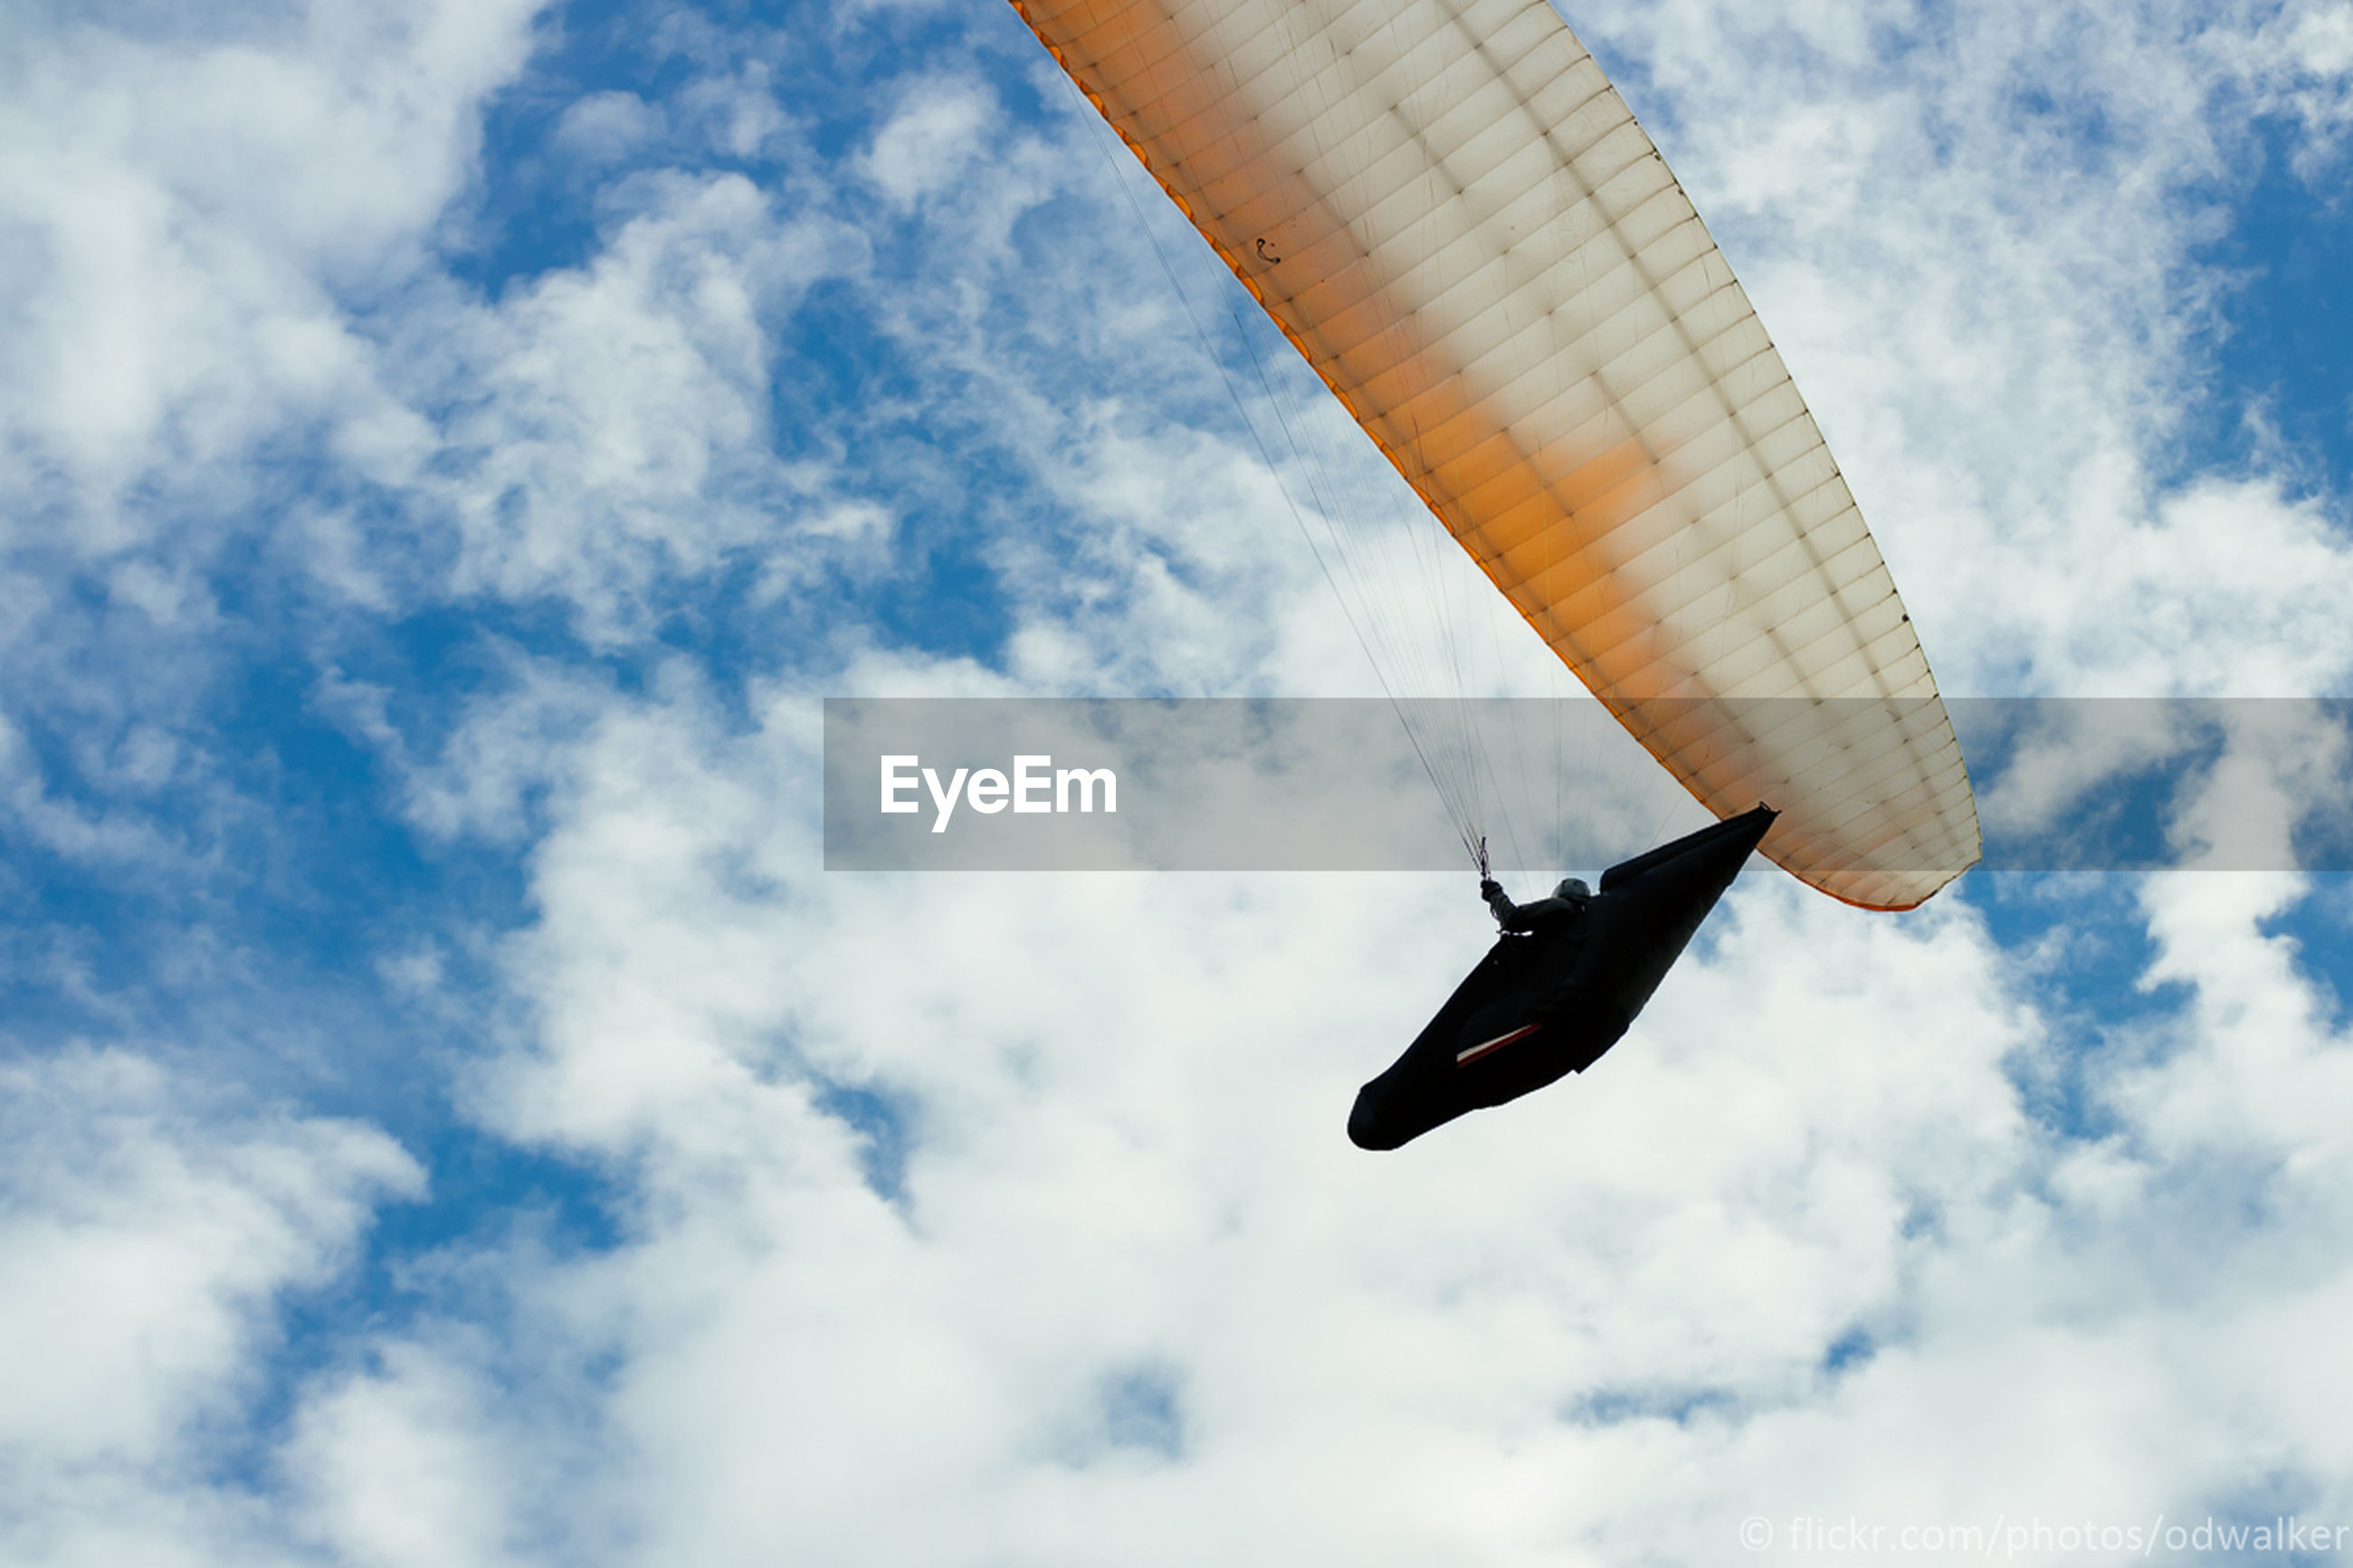 low angle view, sky, flying, adventure, cloud - sky, freedom, extreme sports, mid-air, real people, day, parachute, transportation, one person, outdoors, paragliding, nature